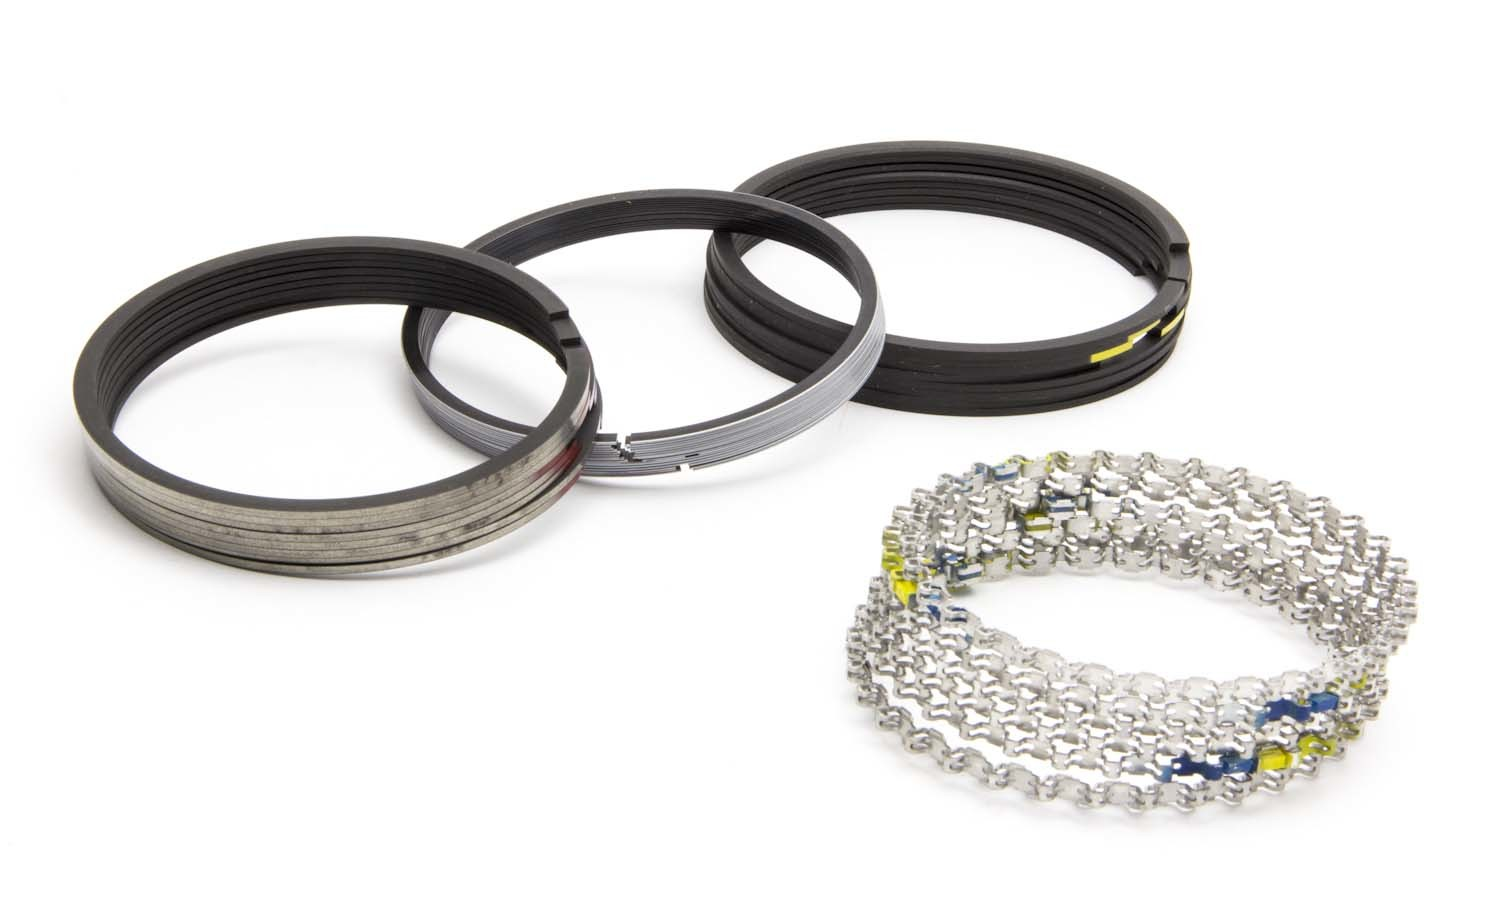 Sealed Power R9903-30 Piston Rings, Speed Pro, 4.030 in Bore, 5/64 x 5/64 x 3/16 in Thick, Standard Tension, Plasma Moly, 8 Cylinder, Kit